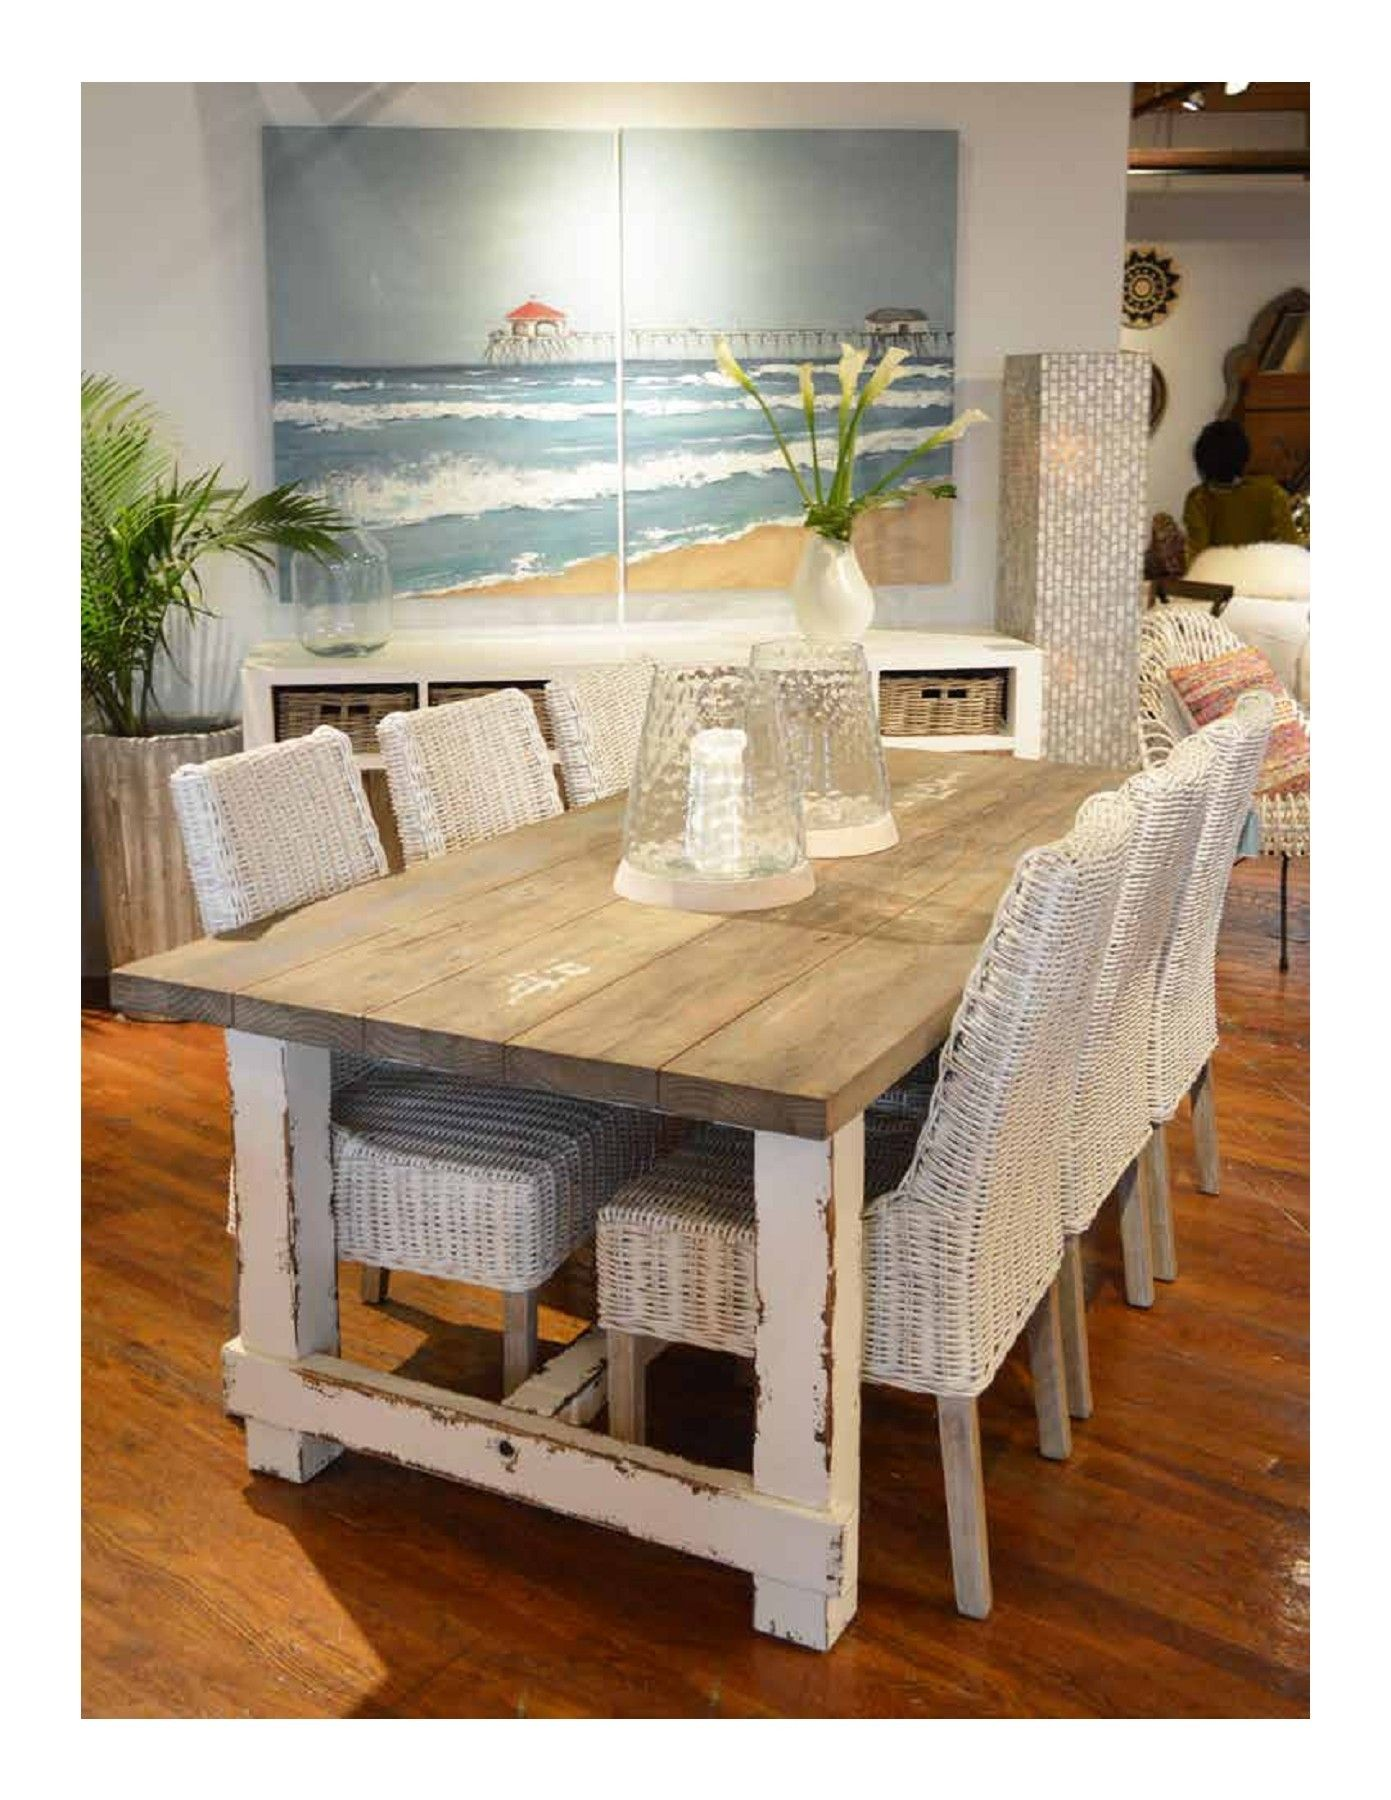 Rustic Farmhouse Wood Dining Table Distressed White Natural Taramundi Furniture Wood Dining Room Set Wood Dining Room Distressed Dining Table